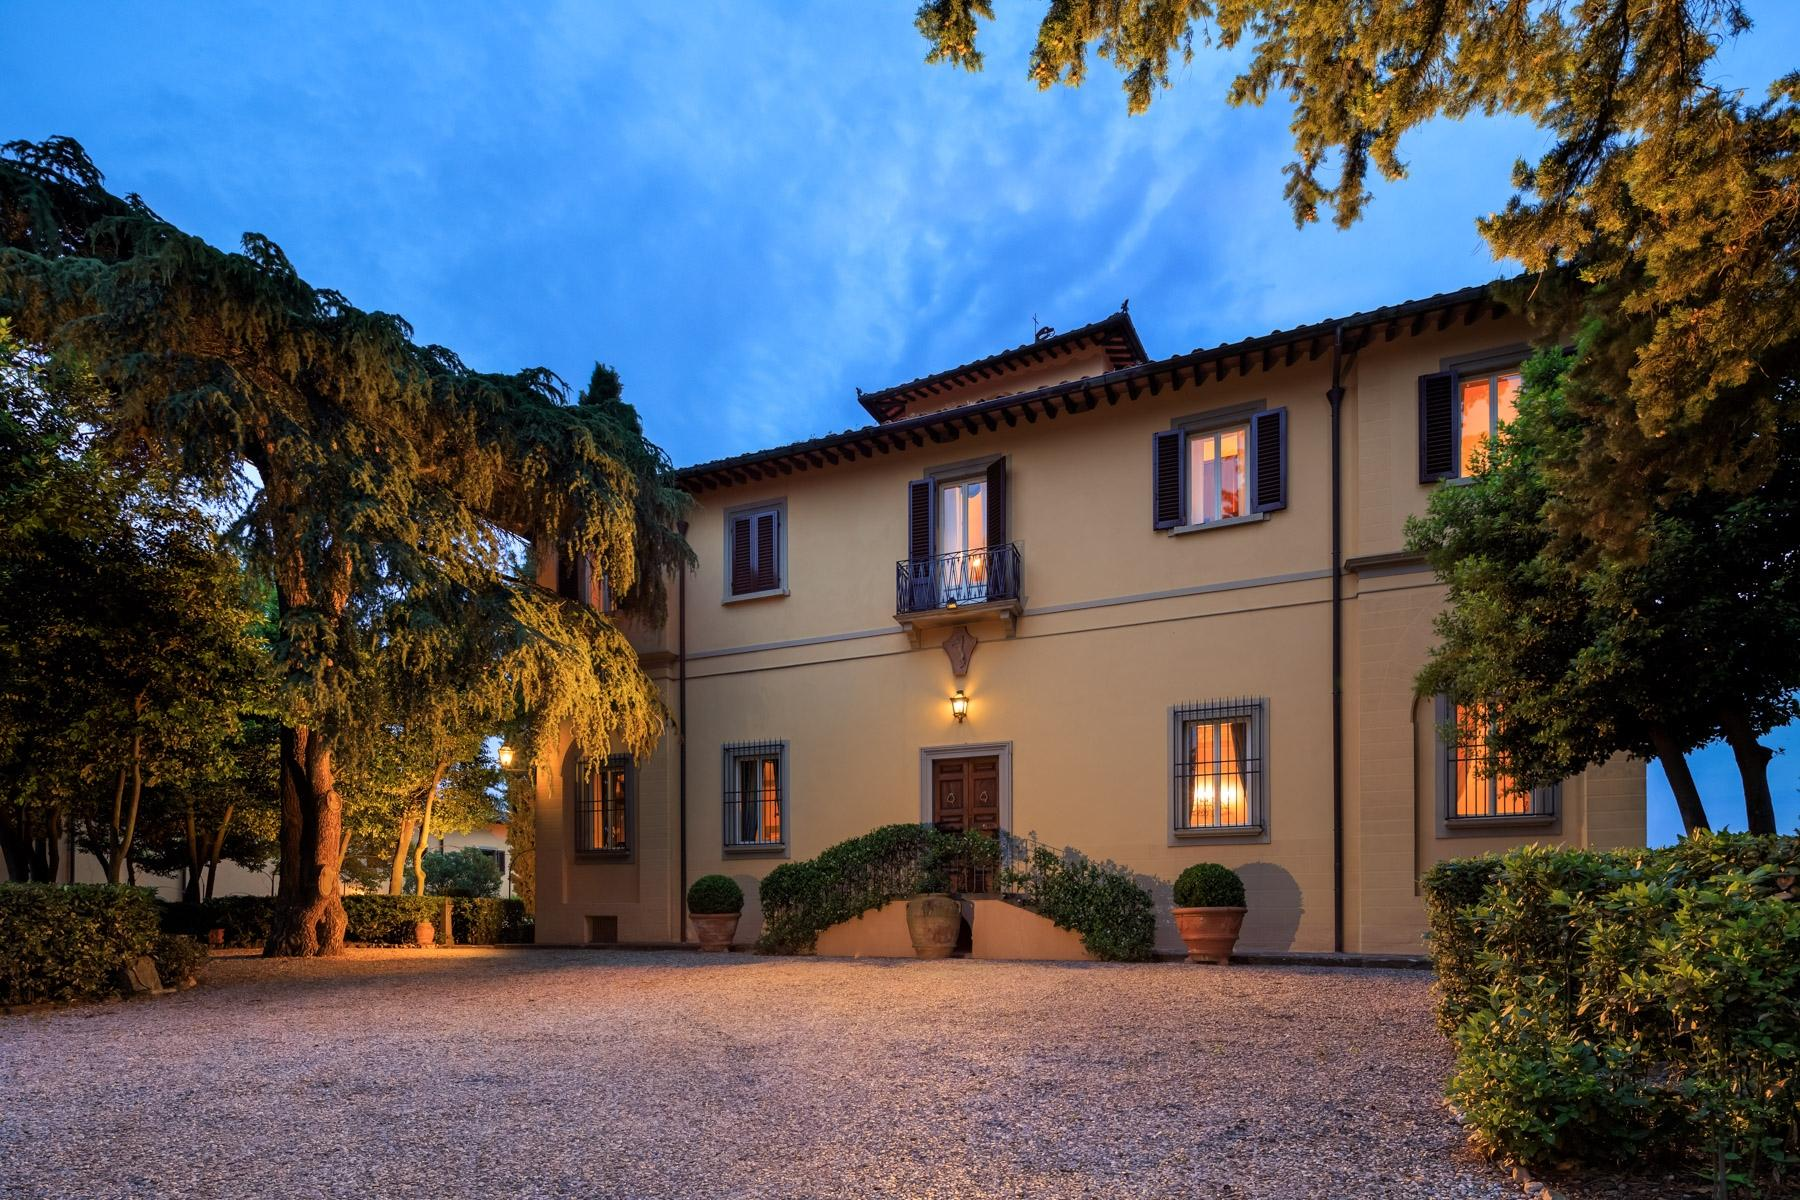 Wonderful villa of the sixteenth century - 2